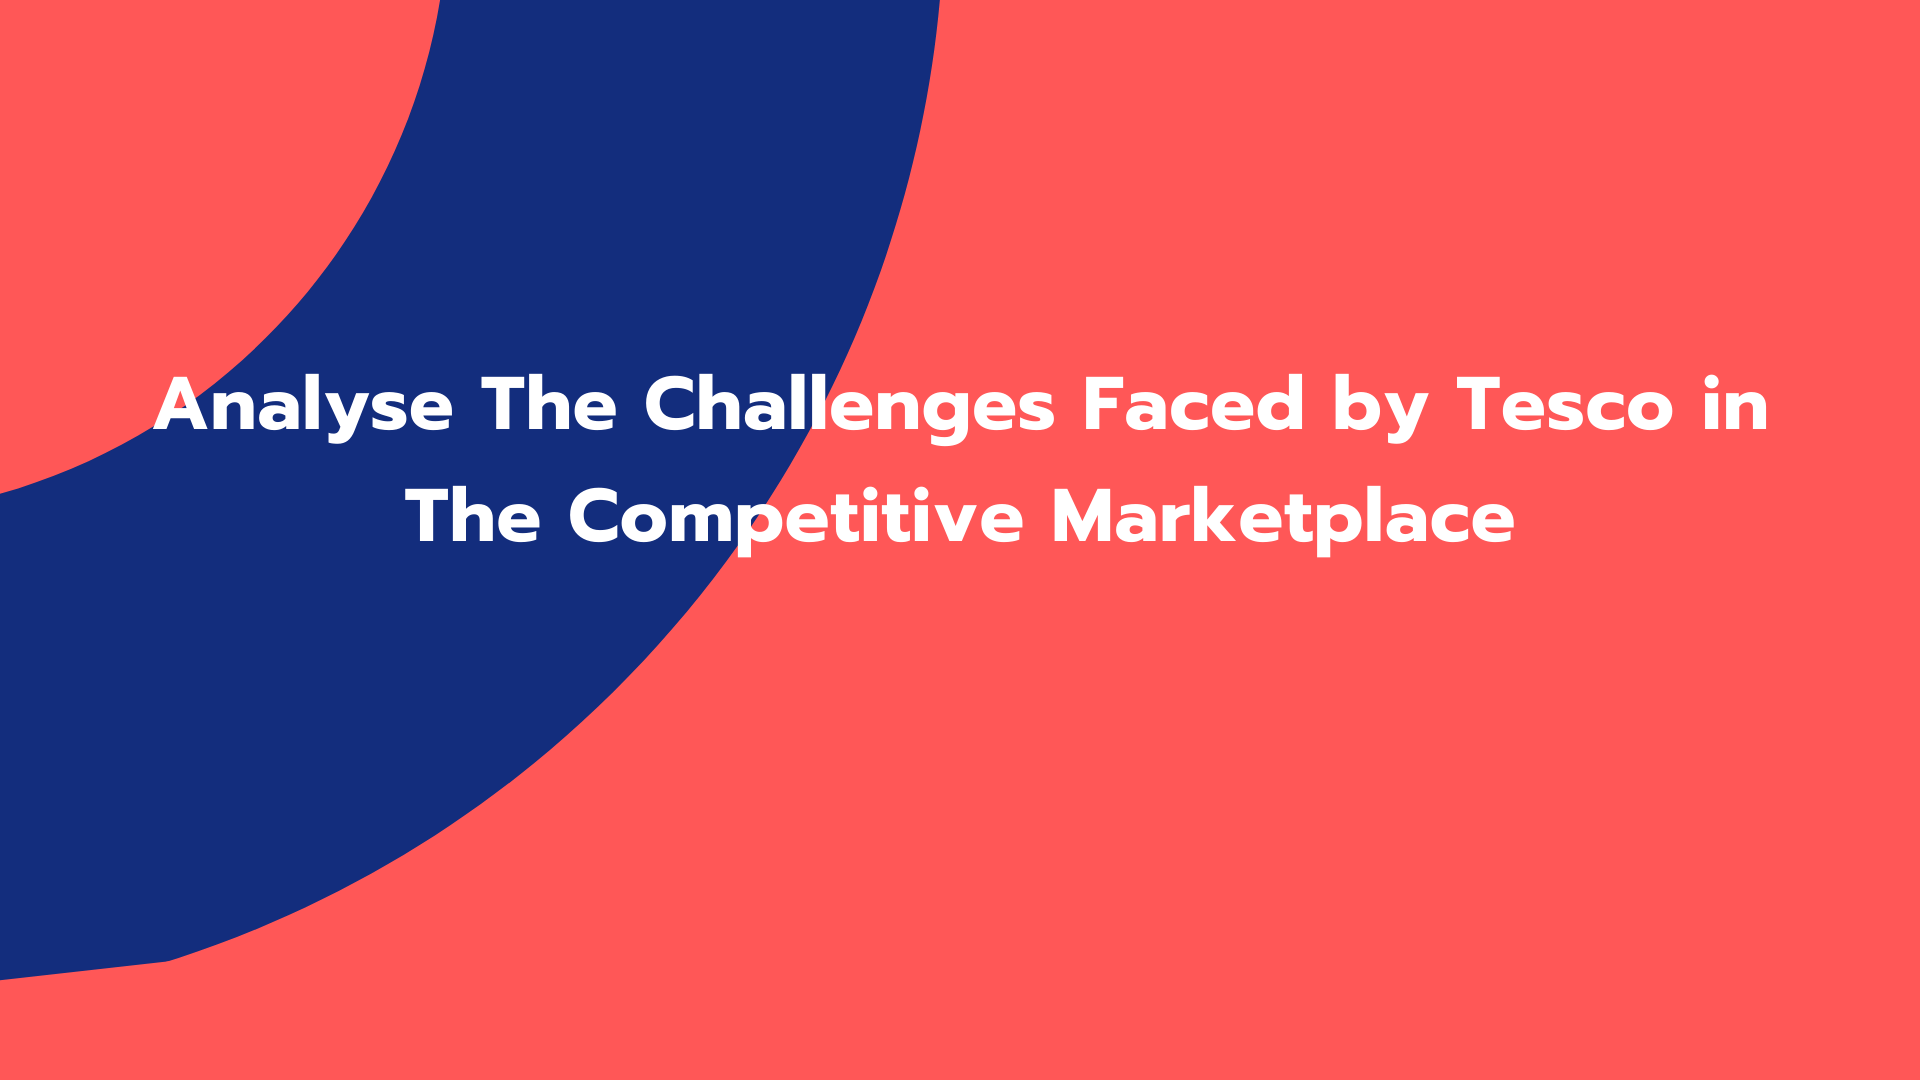 Analyse the challenges faced by Tesco in the competitive marketplace